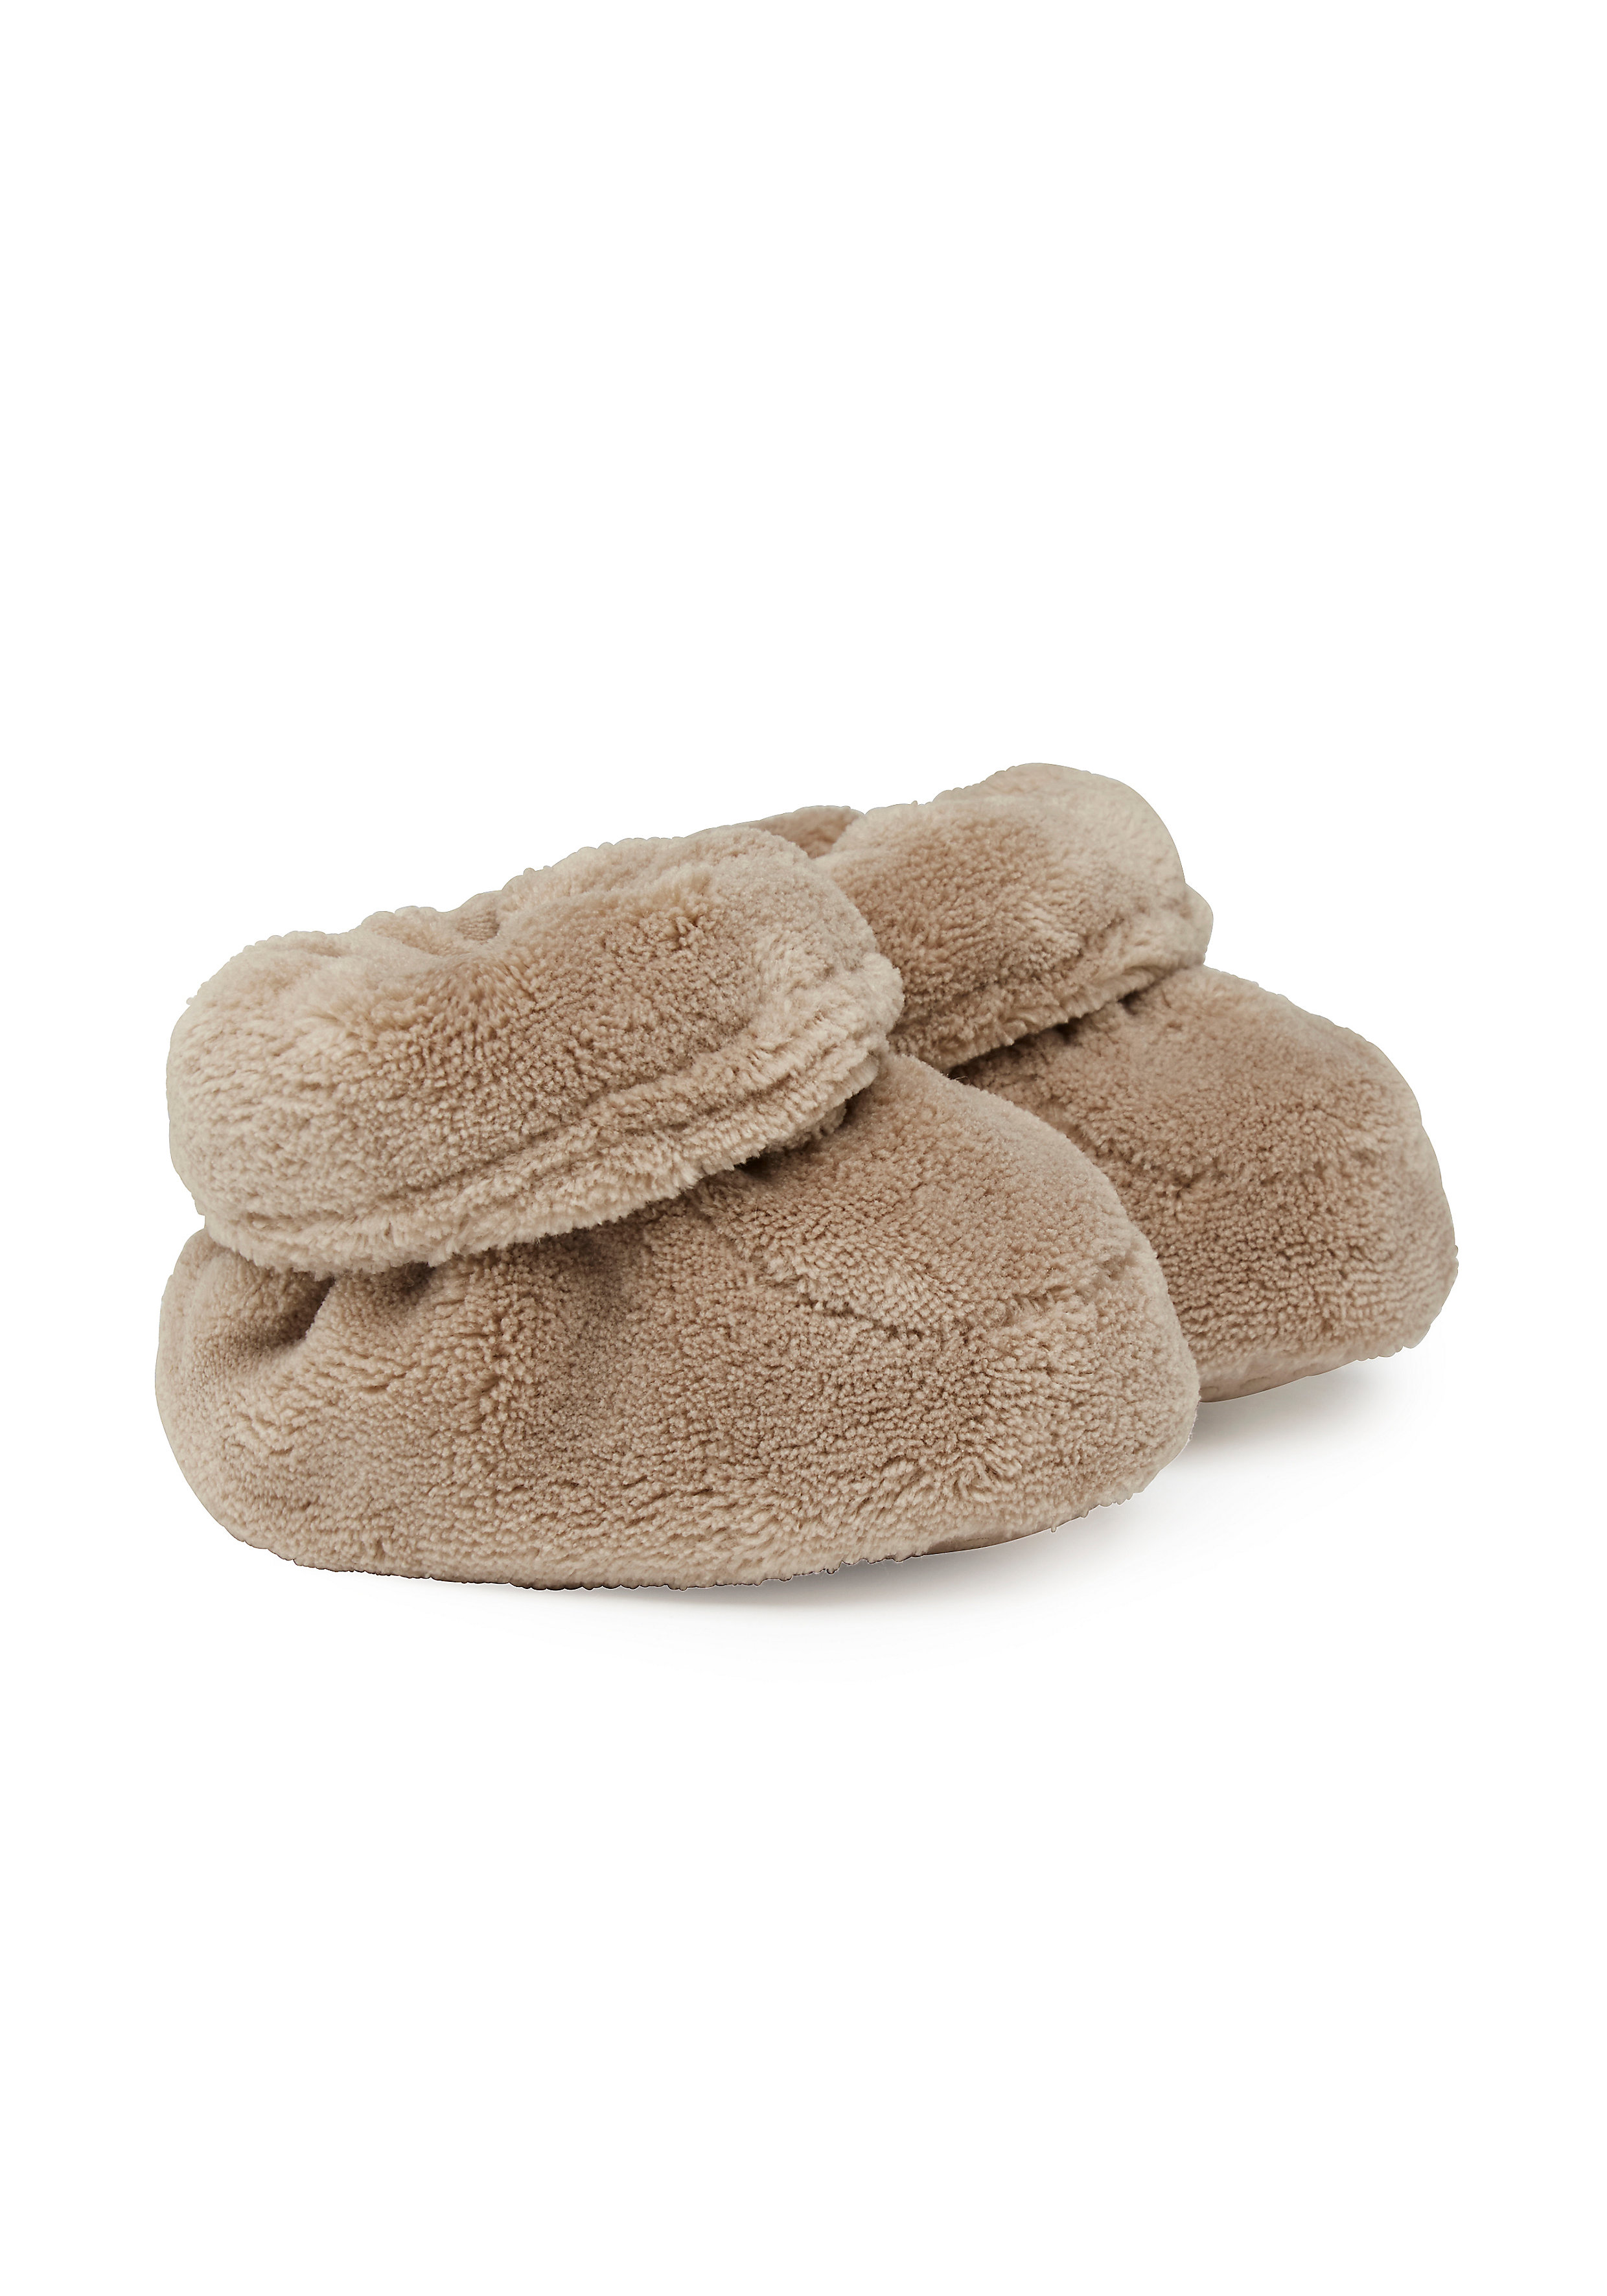 Mothercare | Unisex Fluffy Booties - Brown